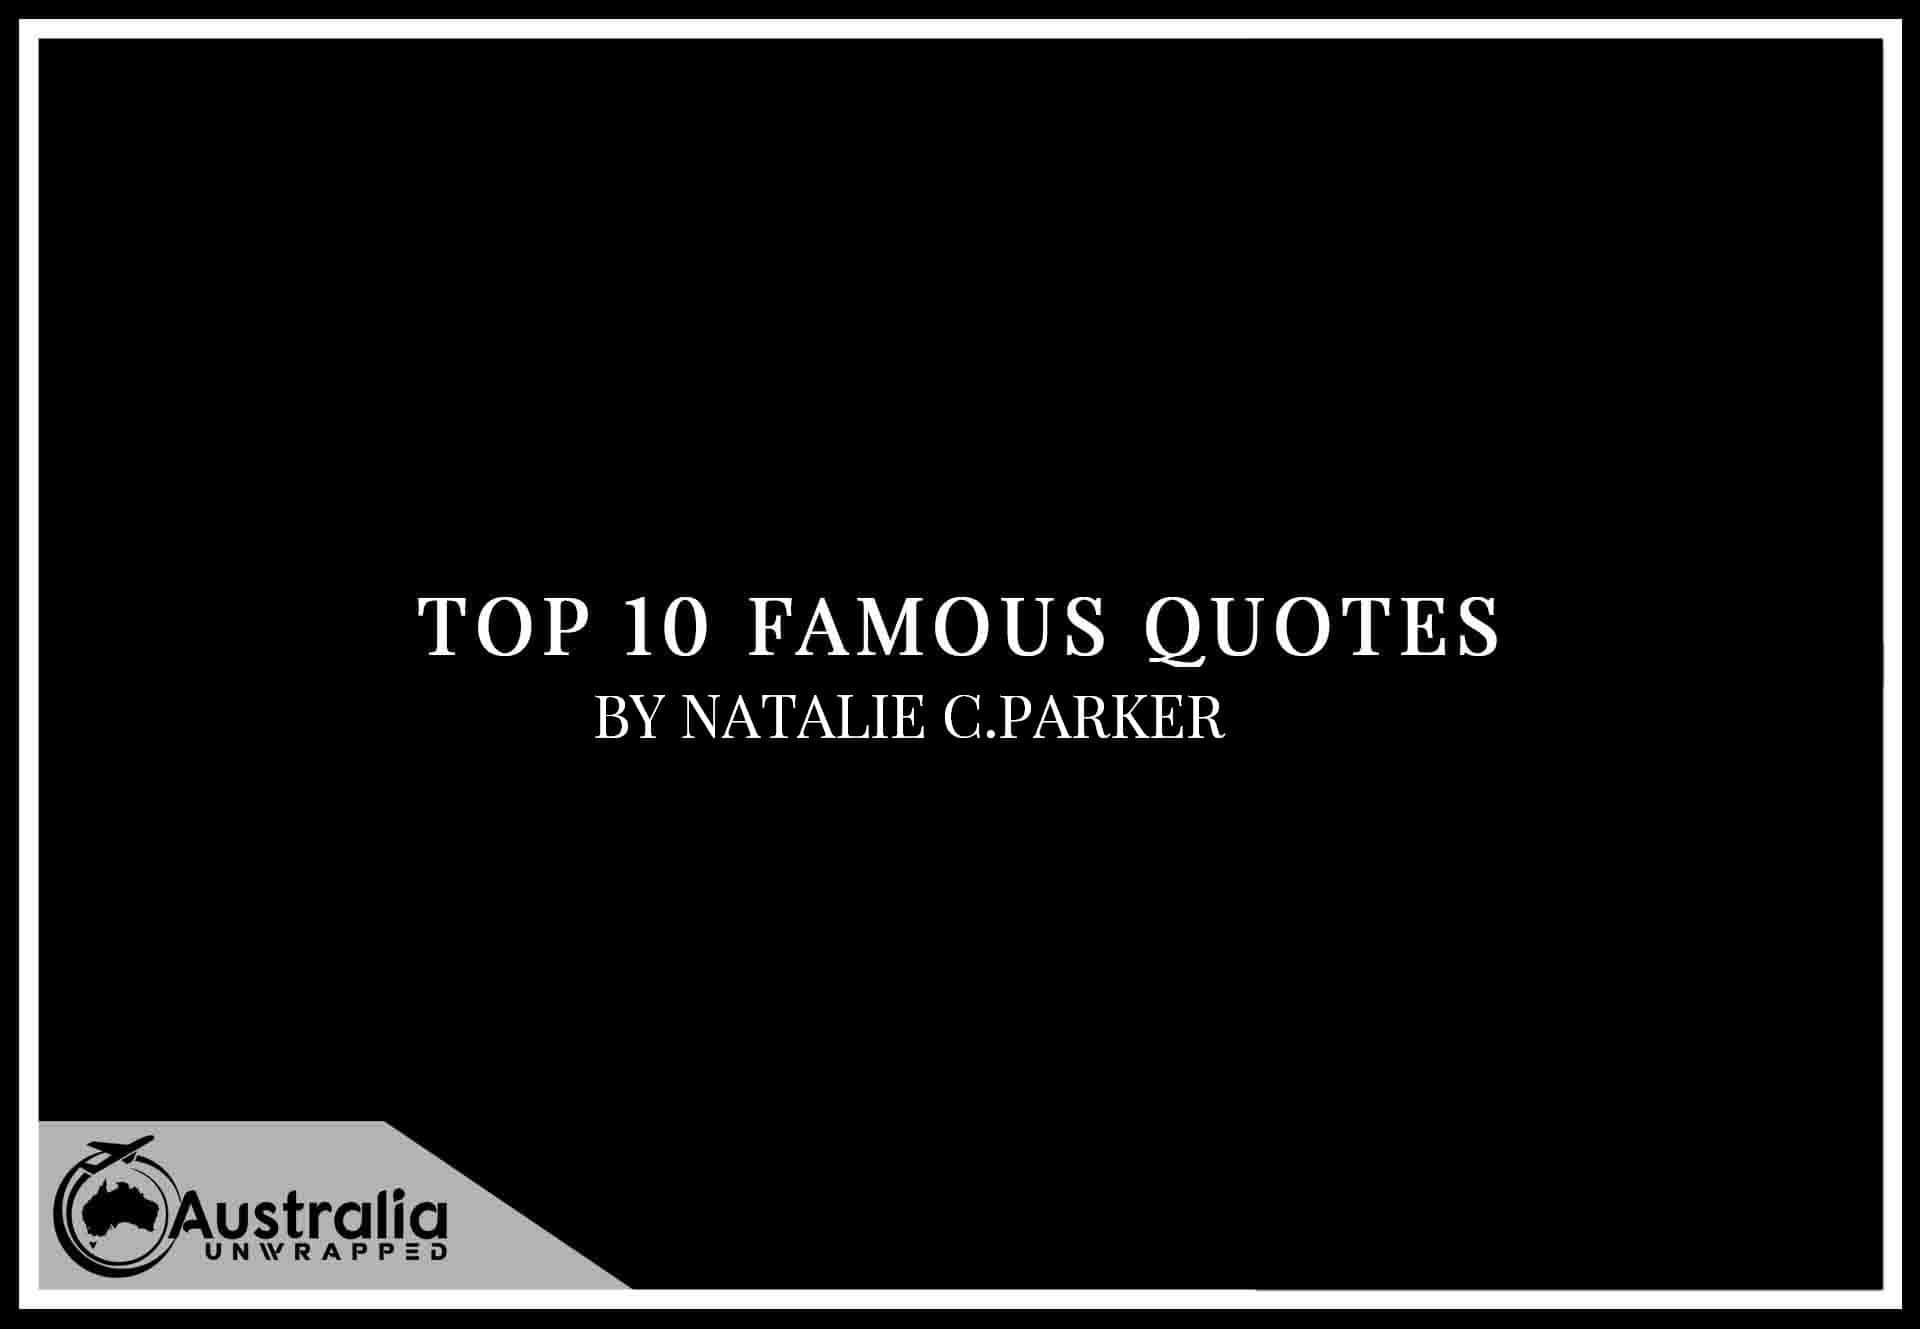 Top 10 Famous Quotes by Author Natalie C. Parker